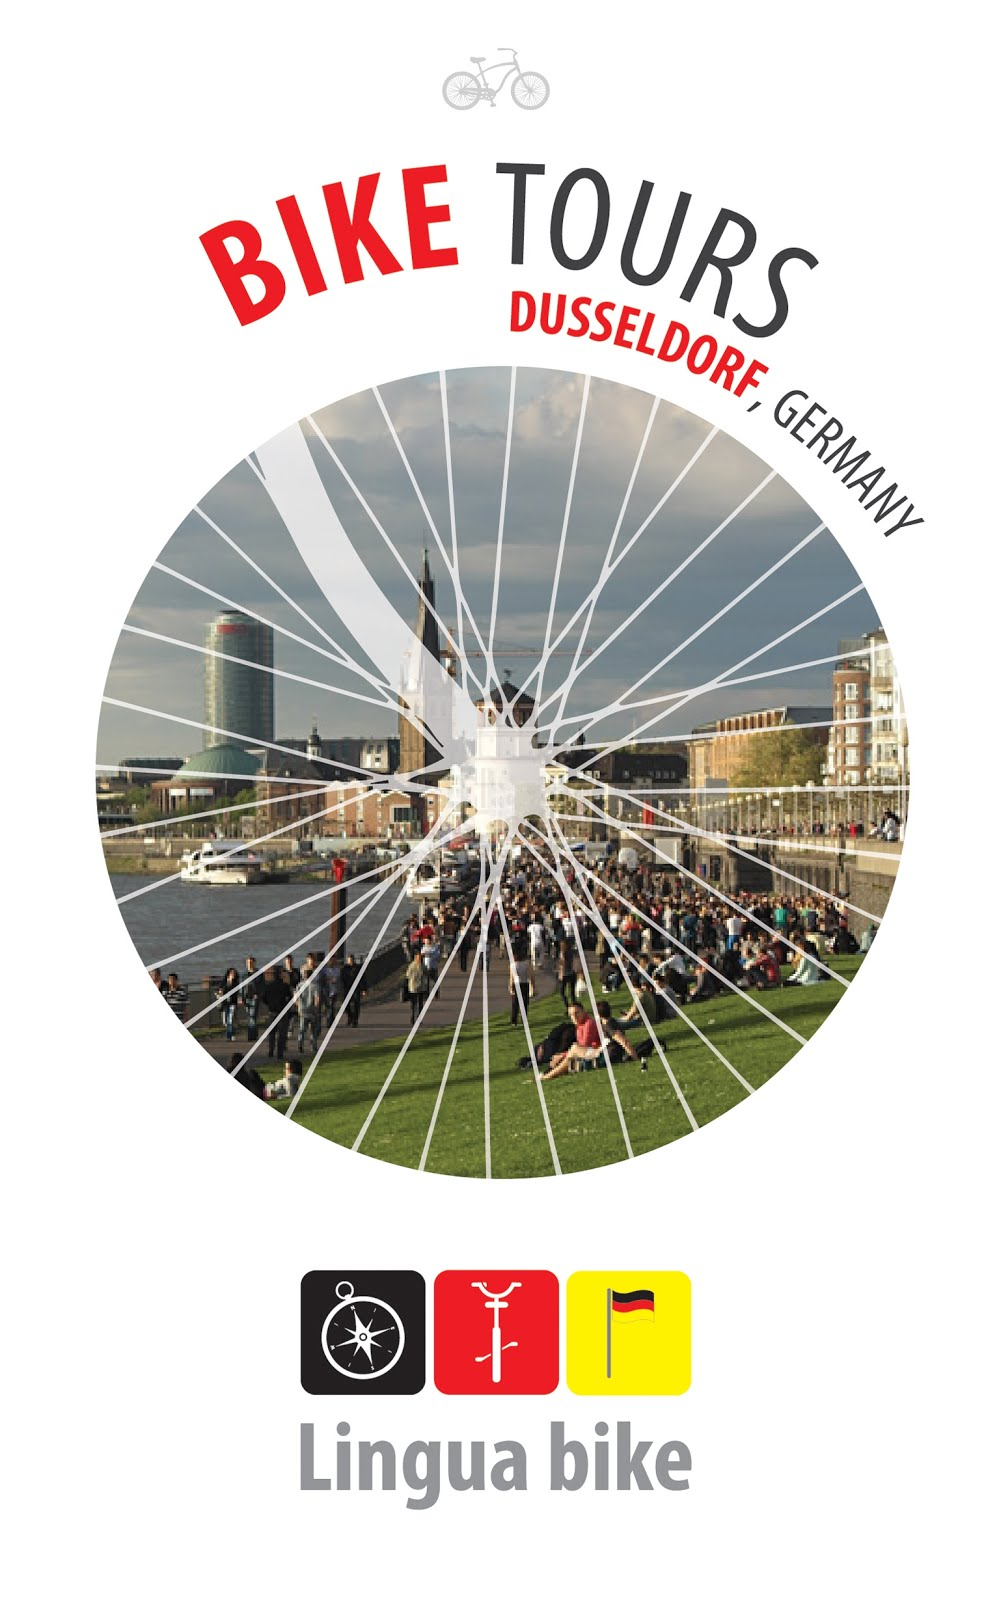 Bike tours round Dusseldorf